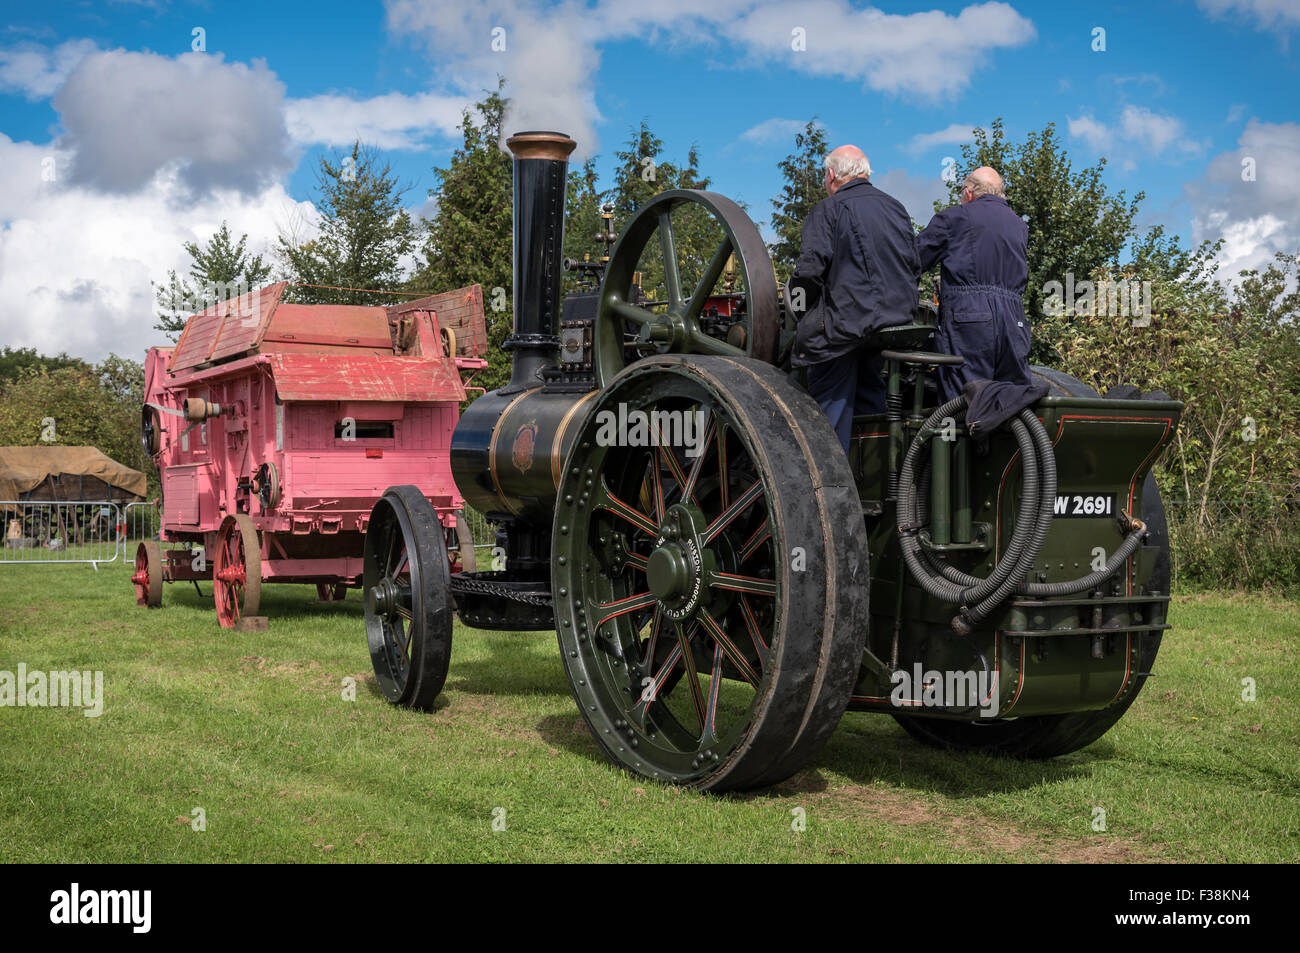 Vintage Steam Traction Locomotive with a vintage threshing machine - Stock Image